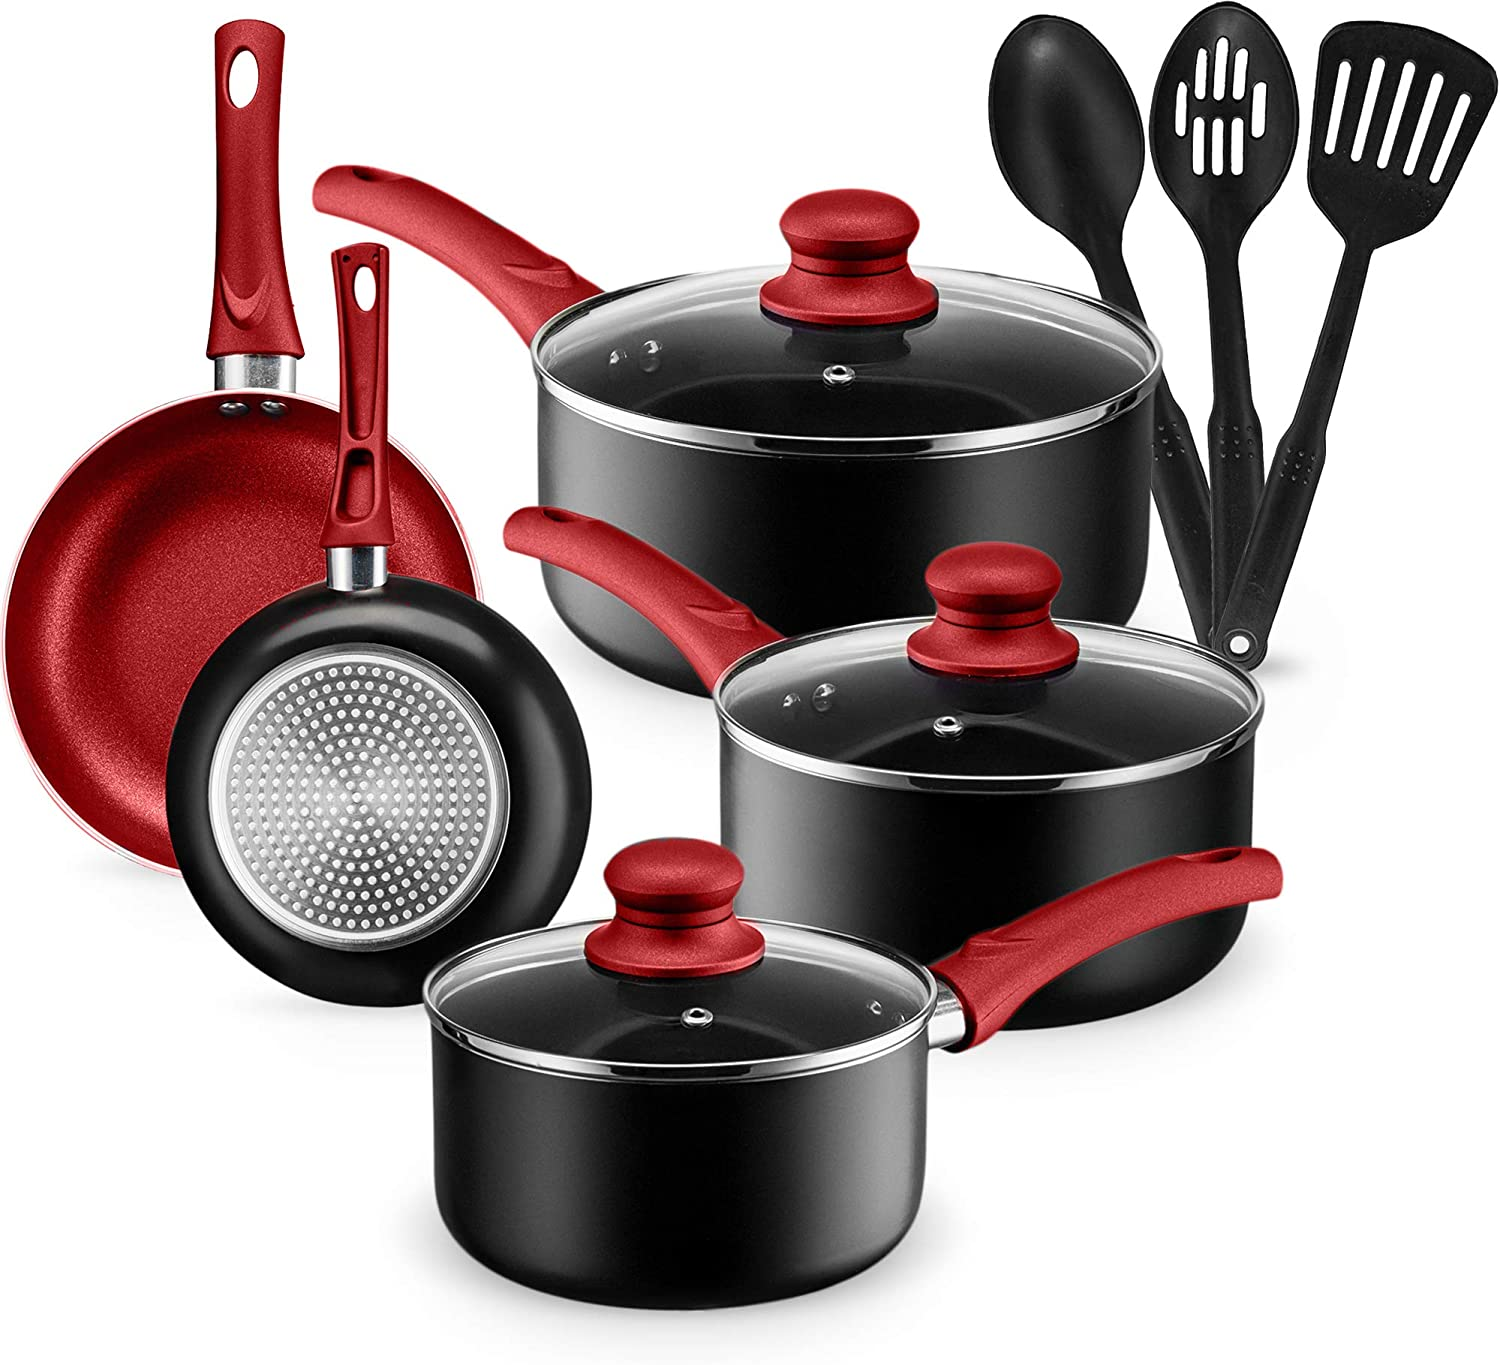 Chef's Star 11 Piece Pots and Pans Set Non-Stick Induction Ready 100% APEO, PFOA and PFOS Free (Red)